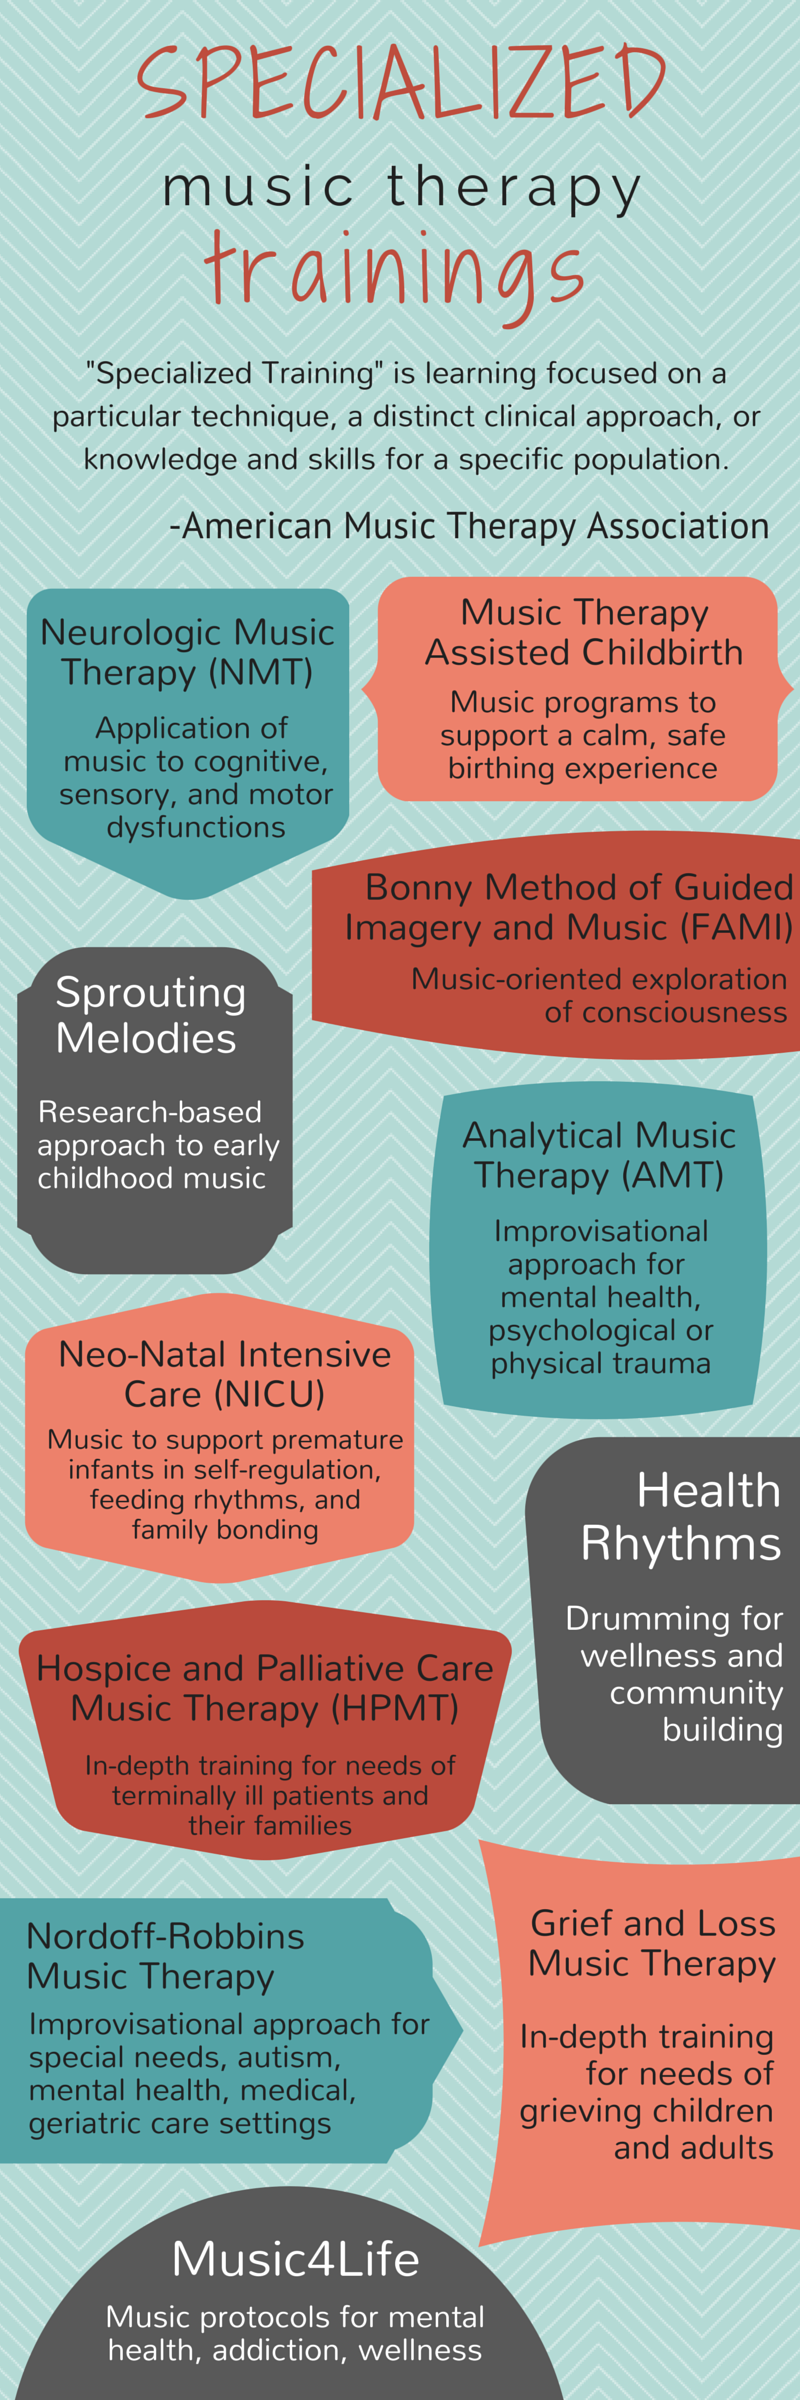 Specialized Music Therapy Trainings (1) | Music therapy ...